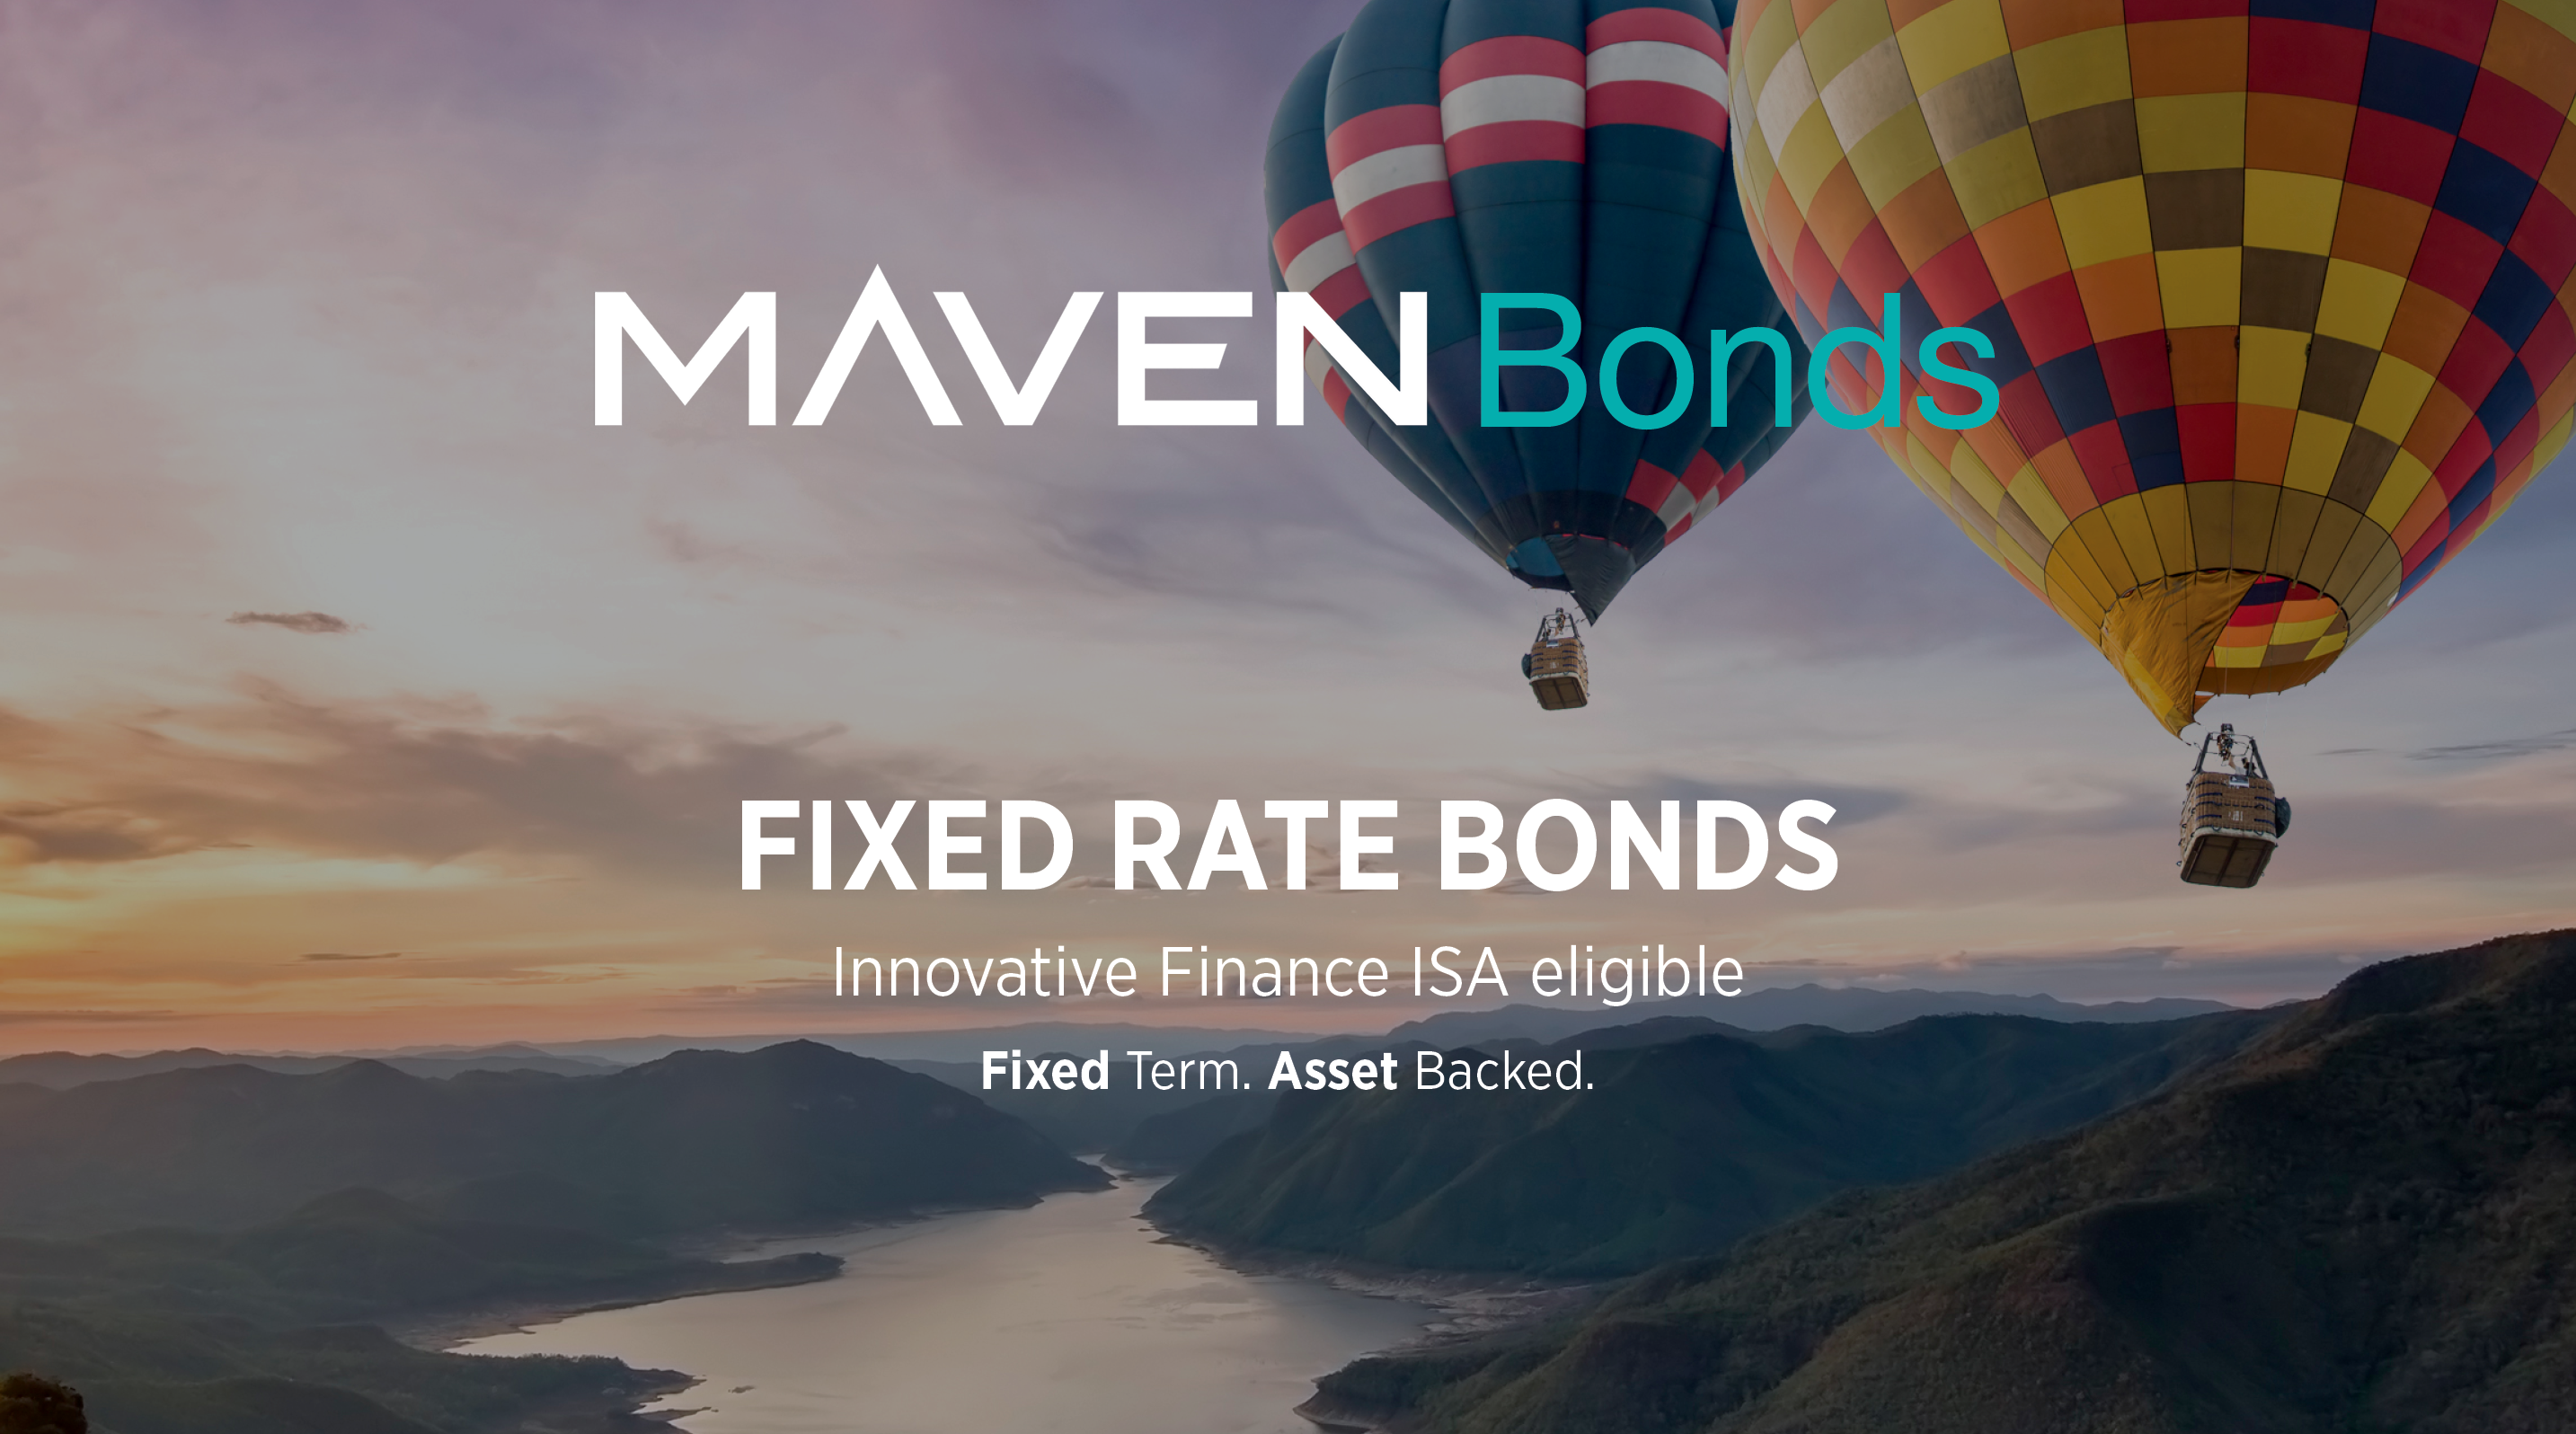 Introducing MAVEN Bonds